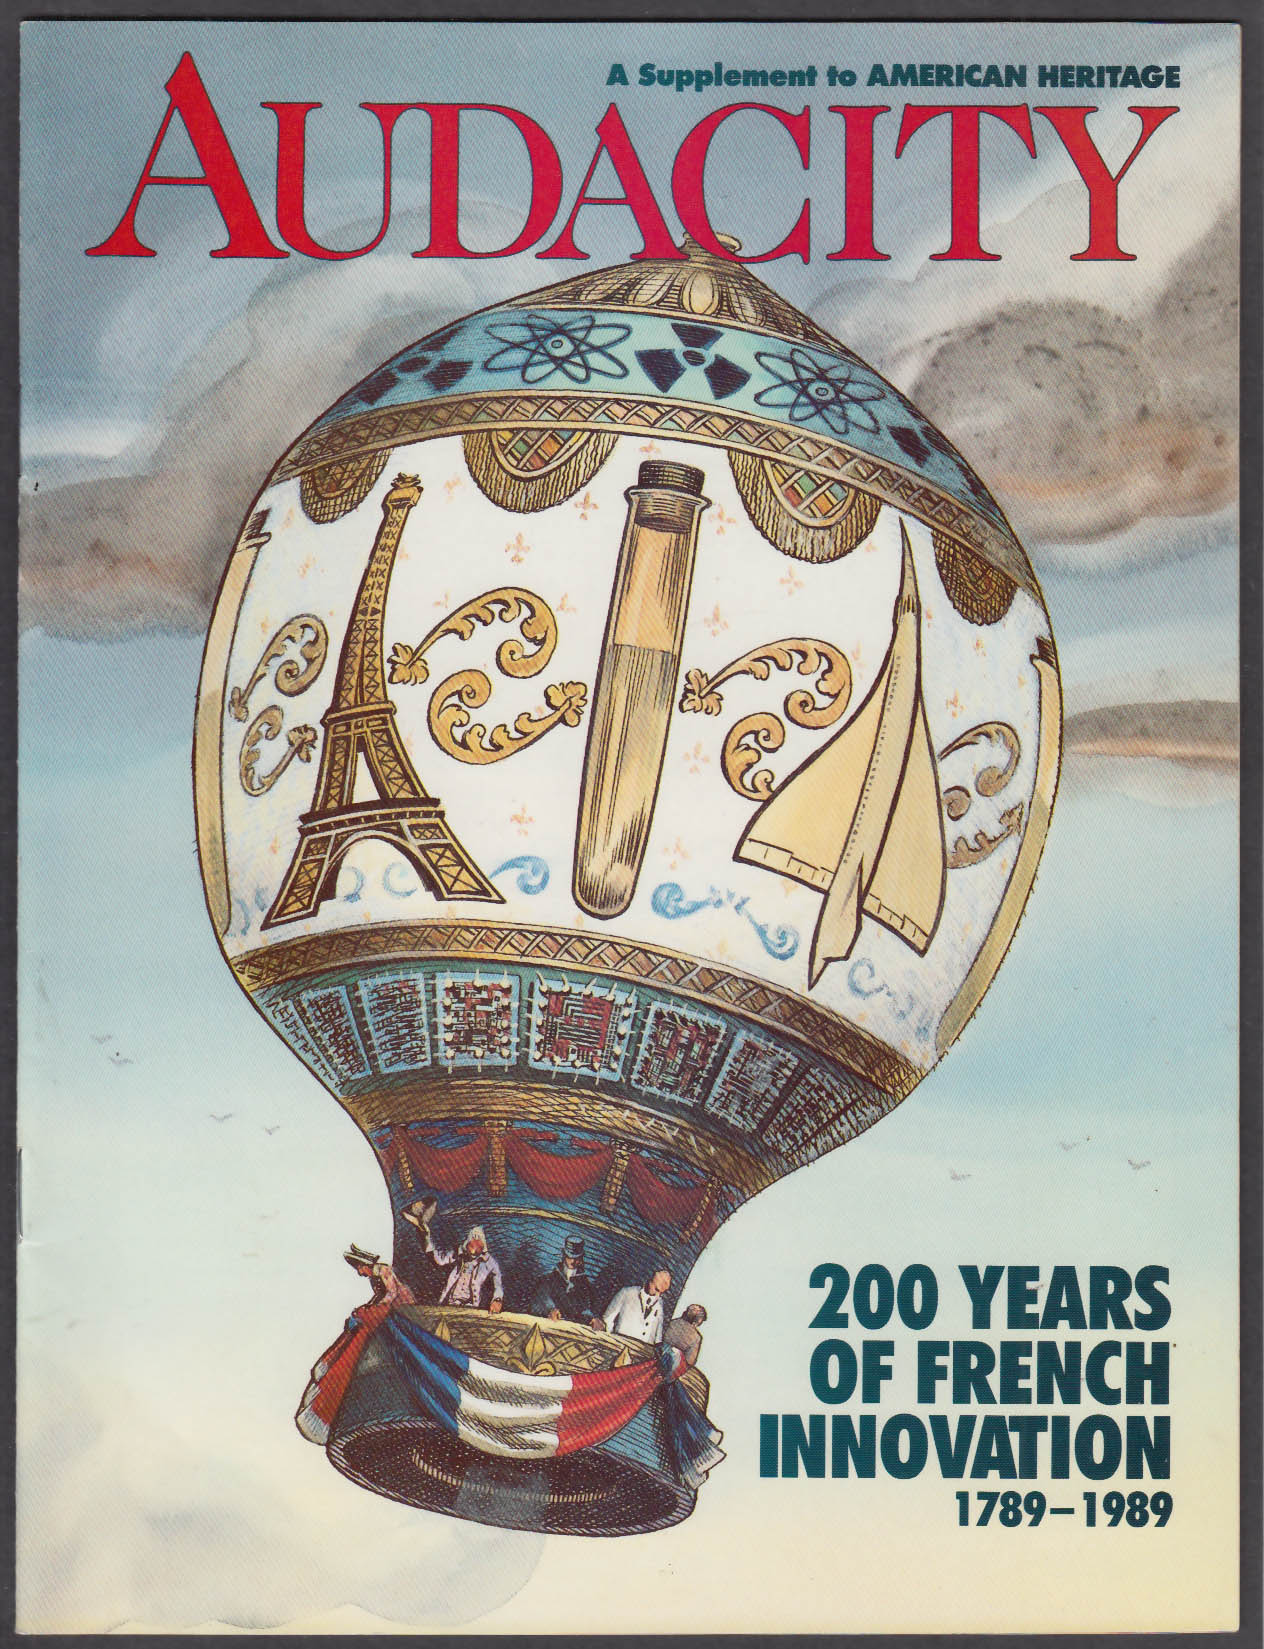 AUDACITY American Heritage Supplement: French Innovation 1789-1989